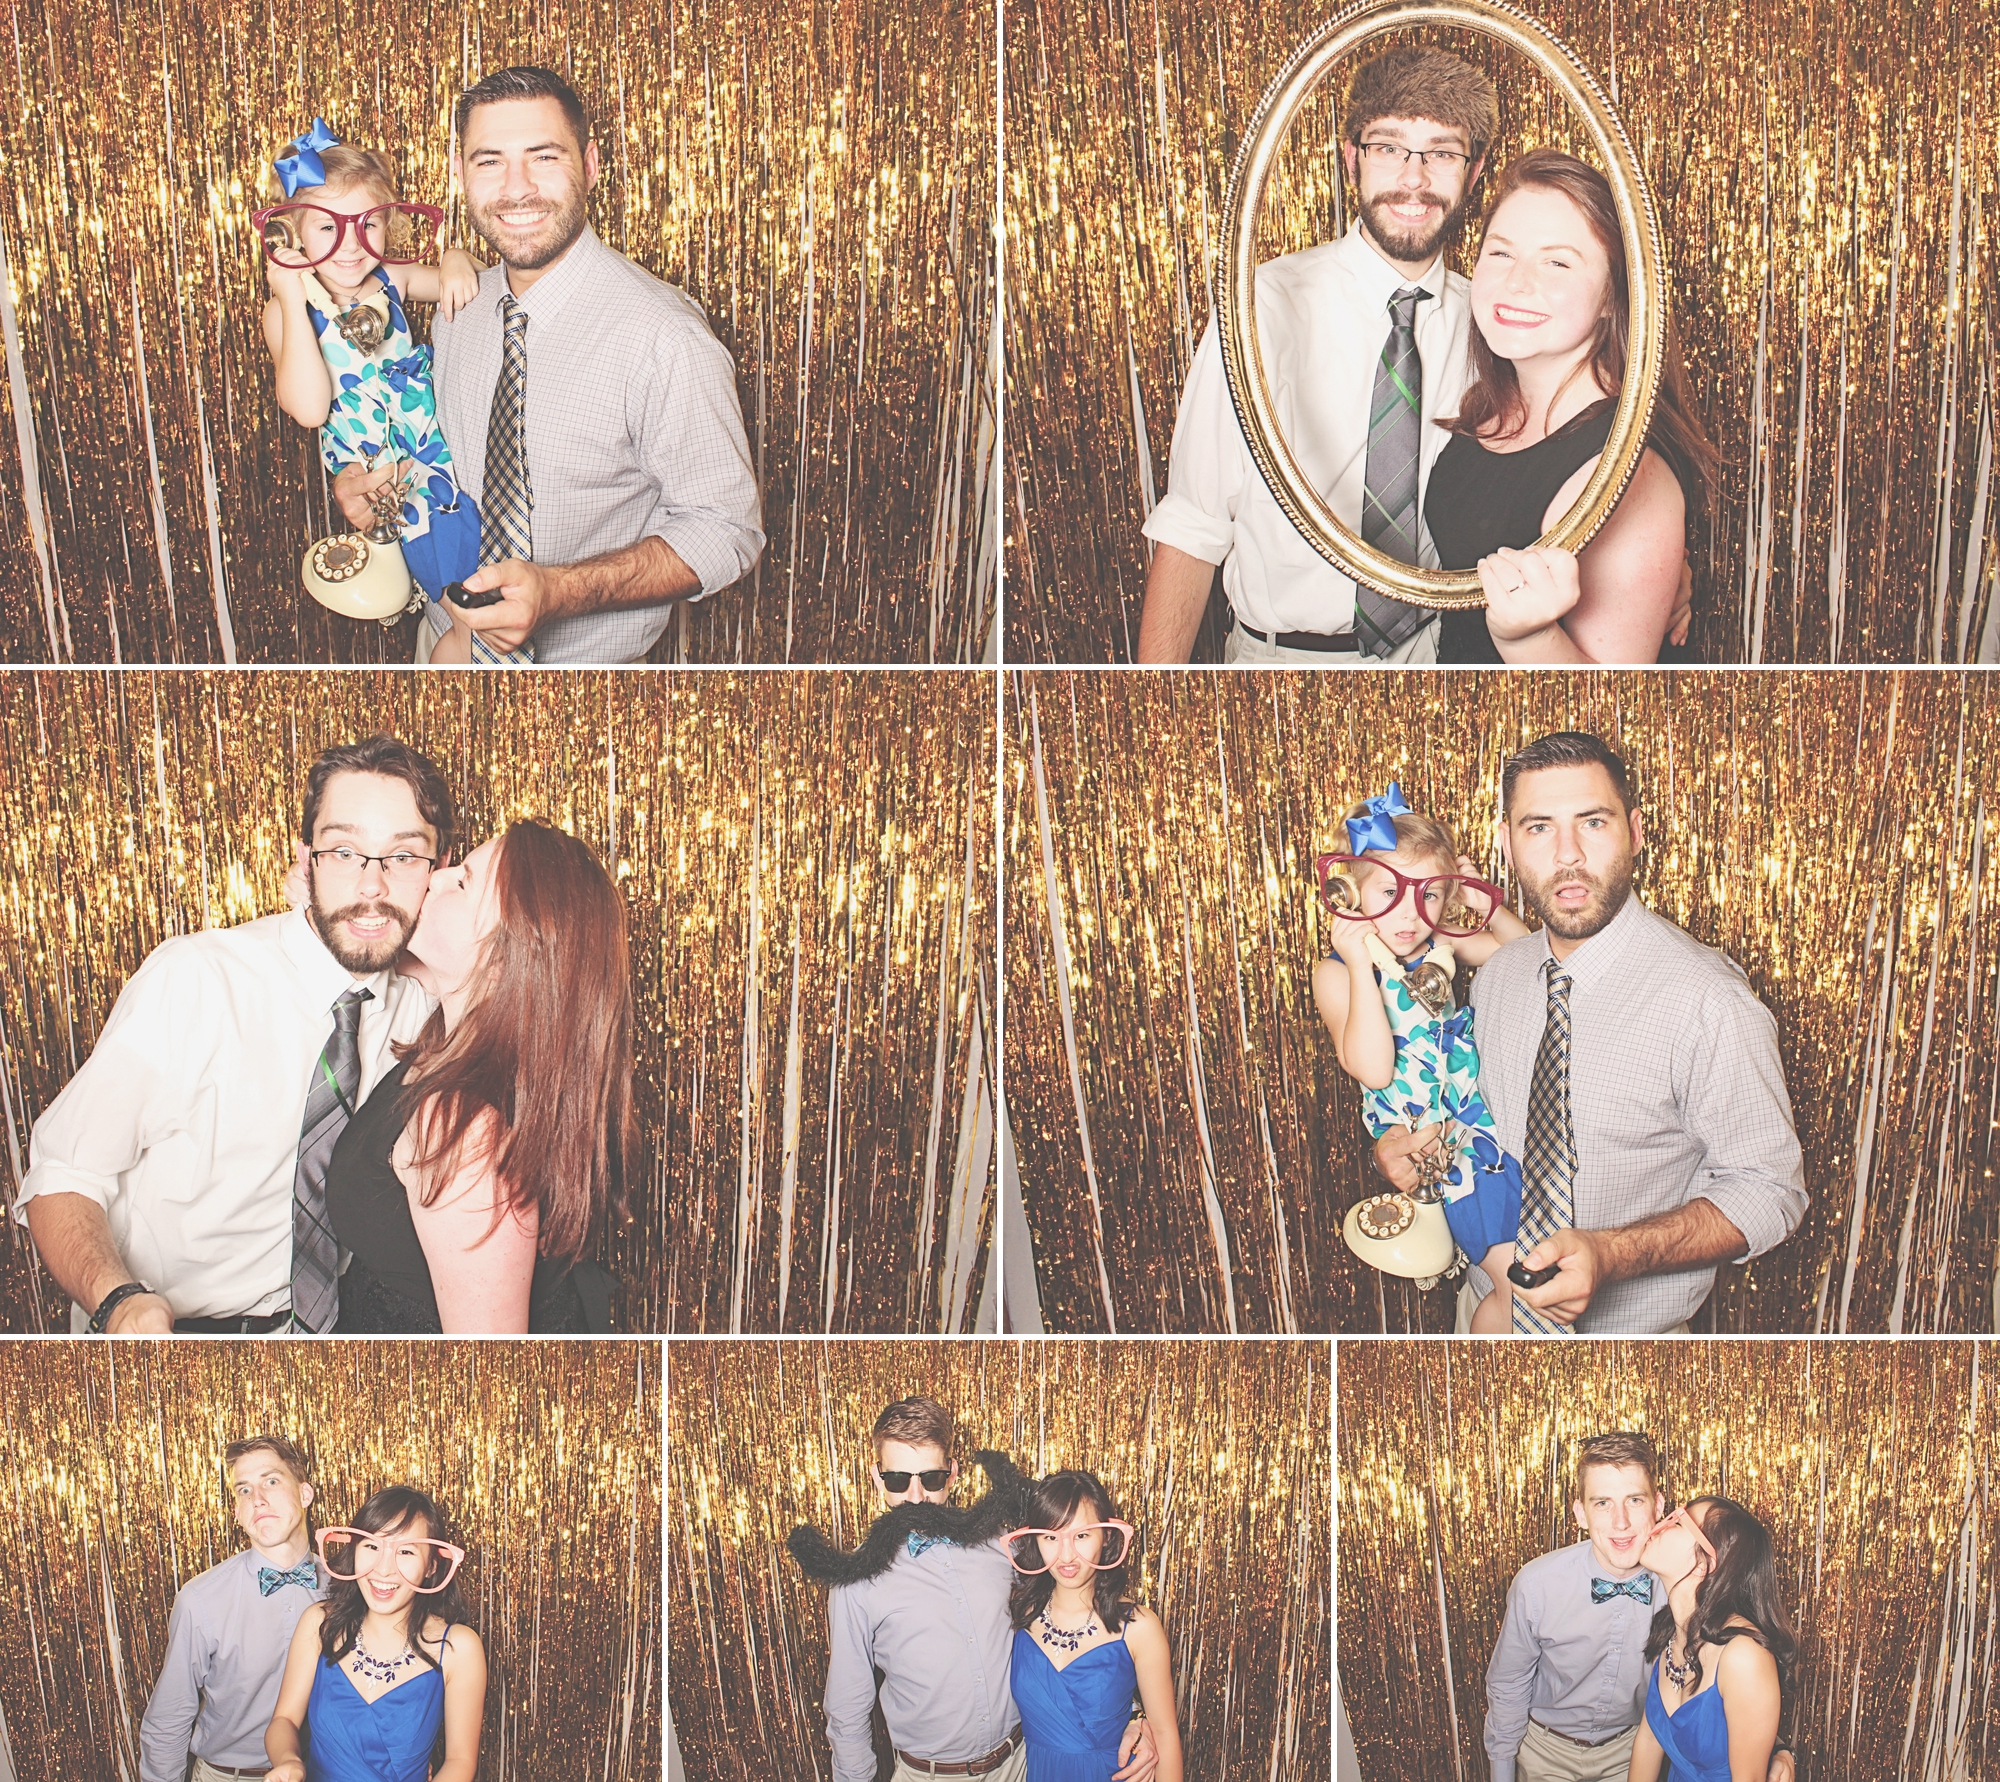 Cheek Creek Farm - Kathrine and Anthony - RobotBooth PhotoBooth 4